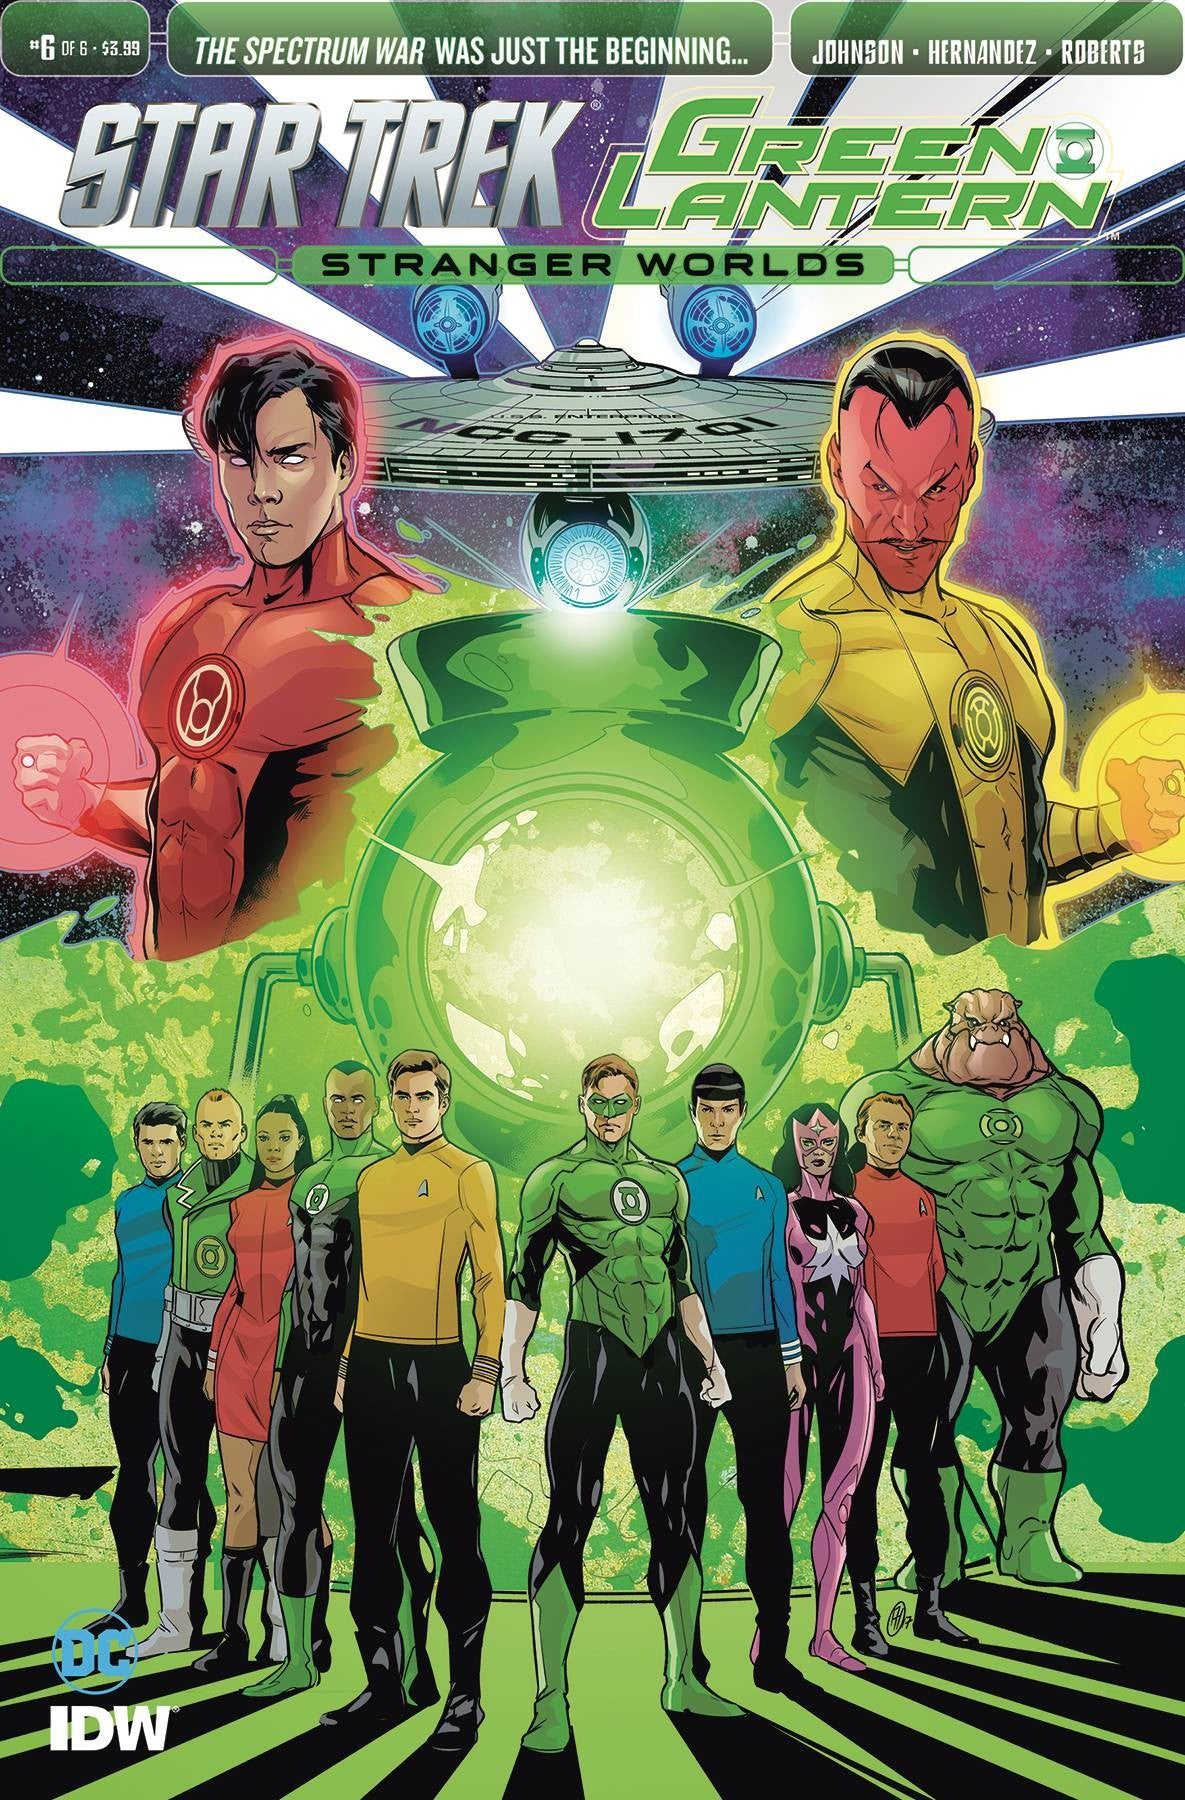 STAR TREK GREEN LANTERN VOL 2 #6